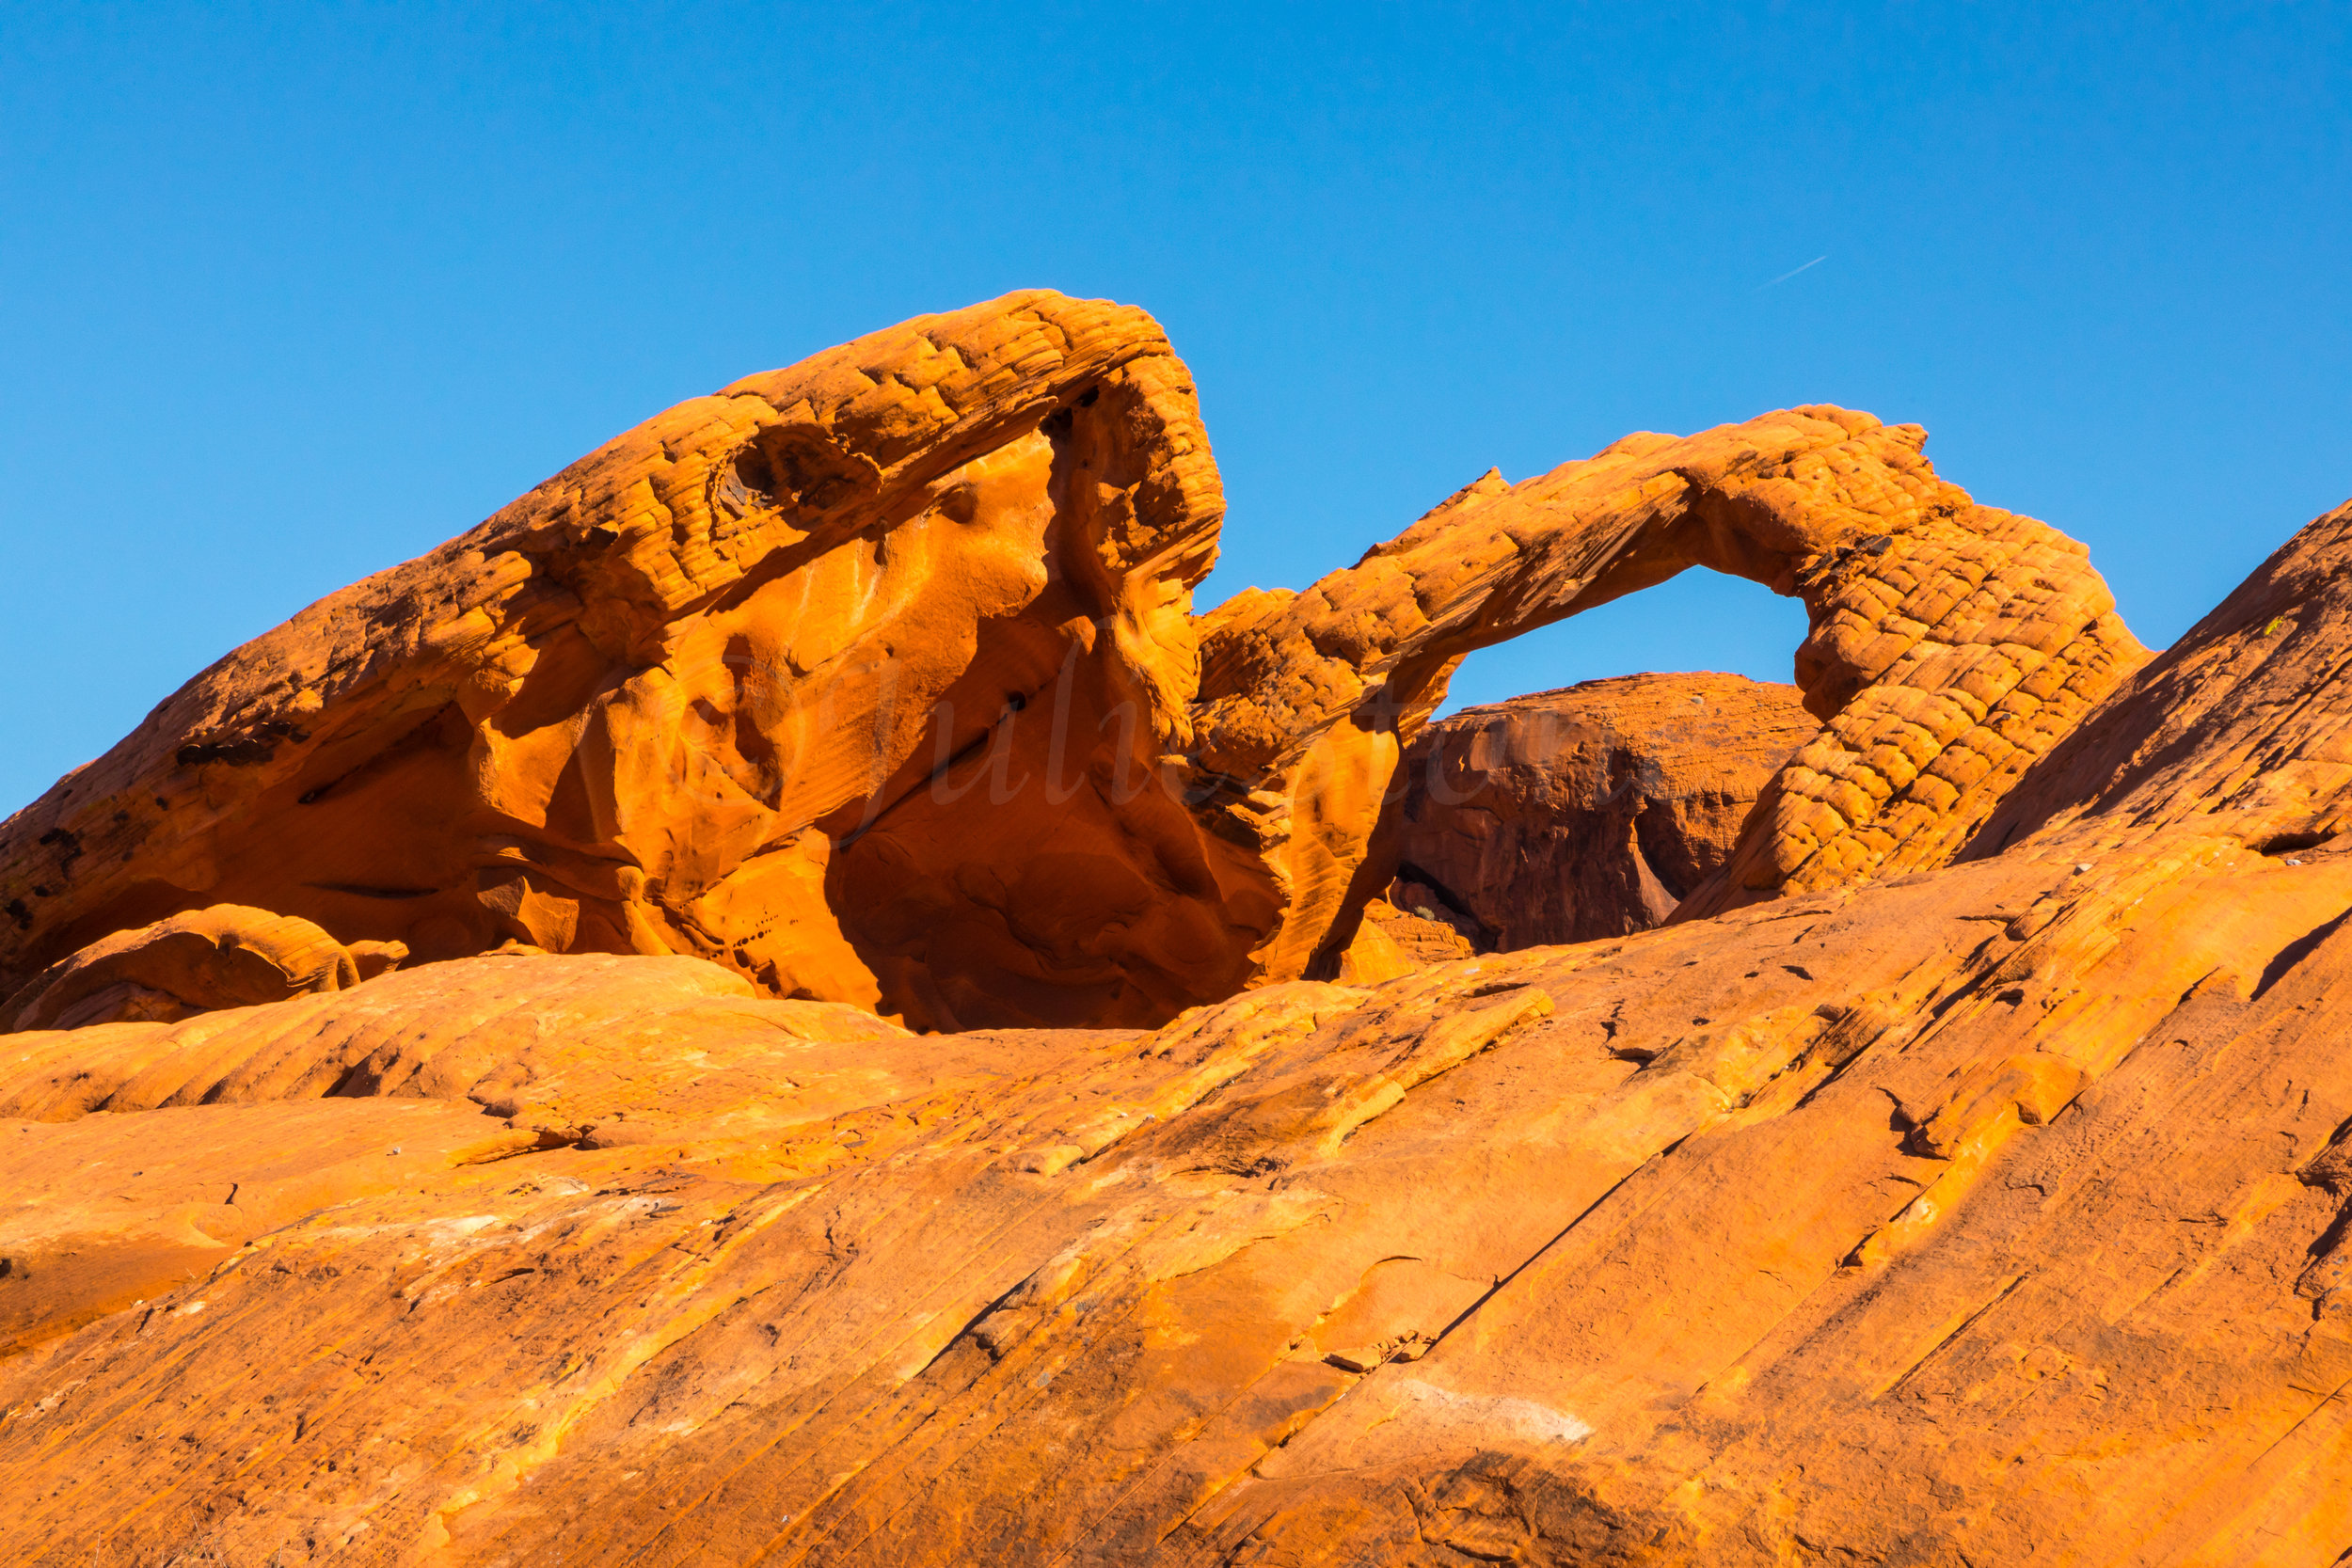 Valley of Fire, Image # 1628